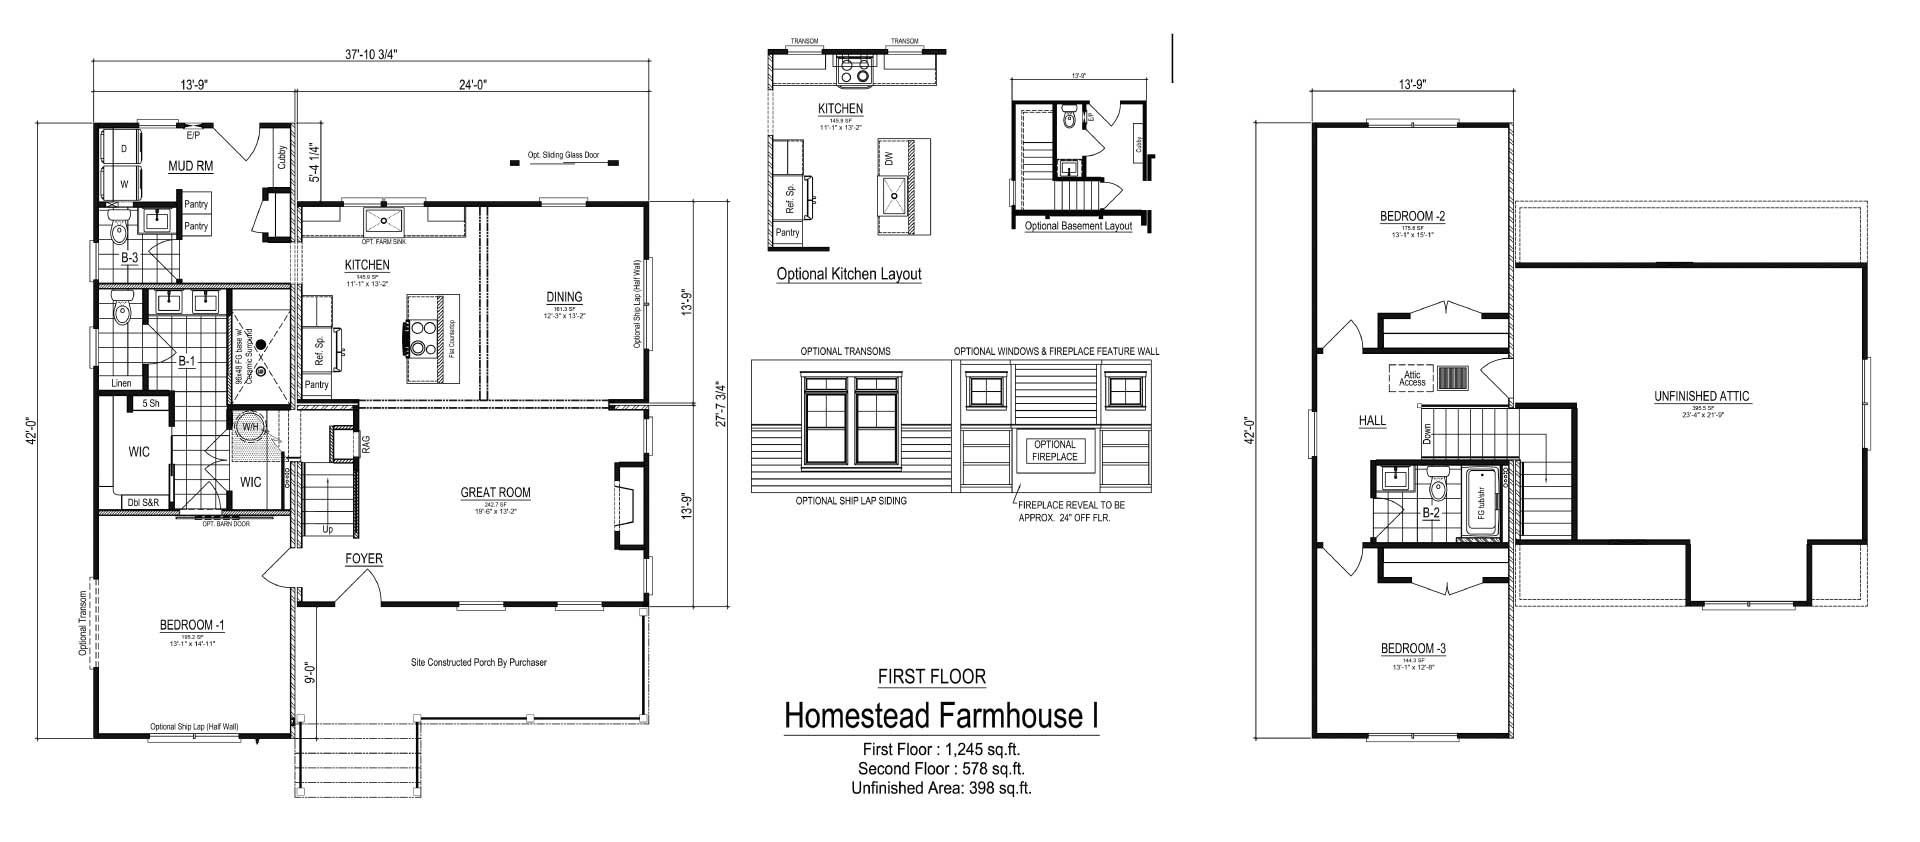 Nationwide Homes Modular Ranch Floor Plan Farmhouse I